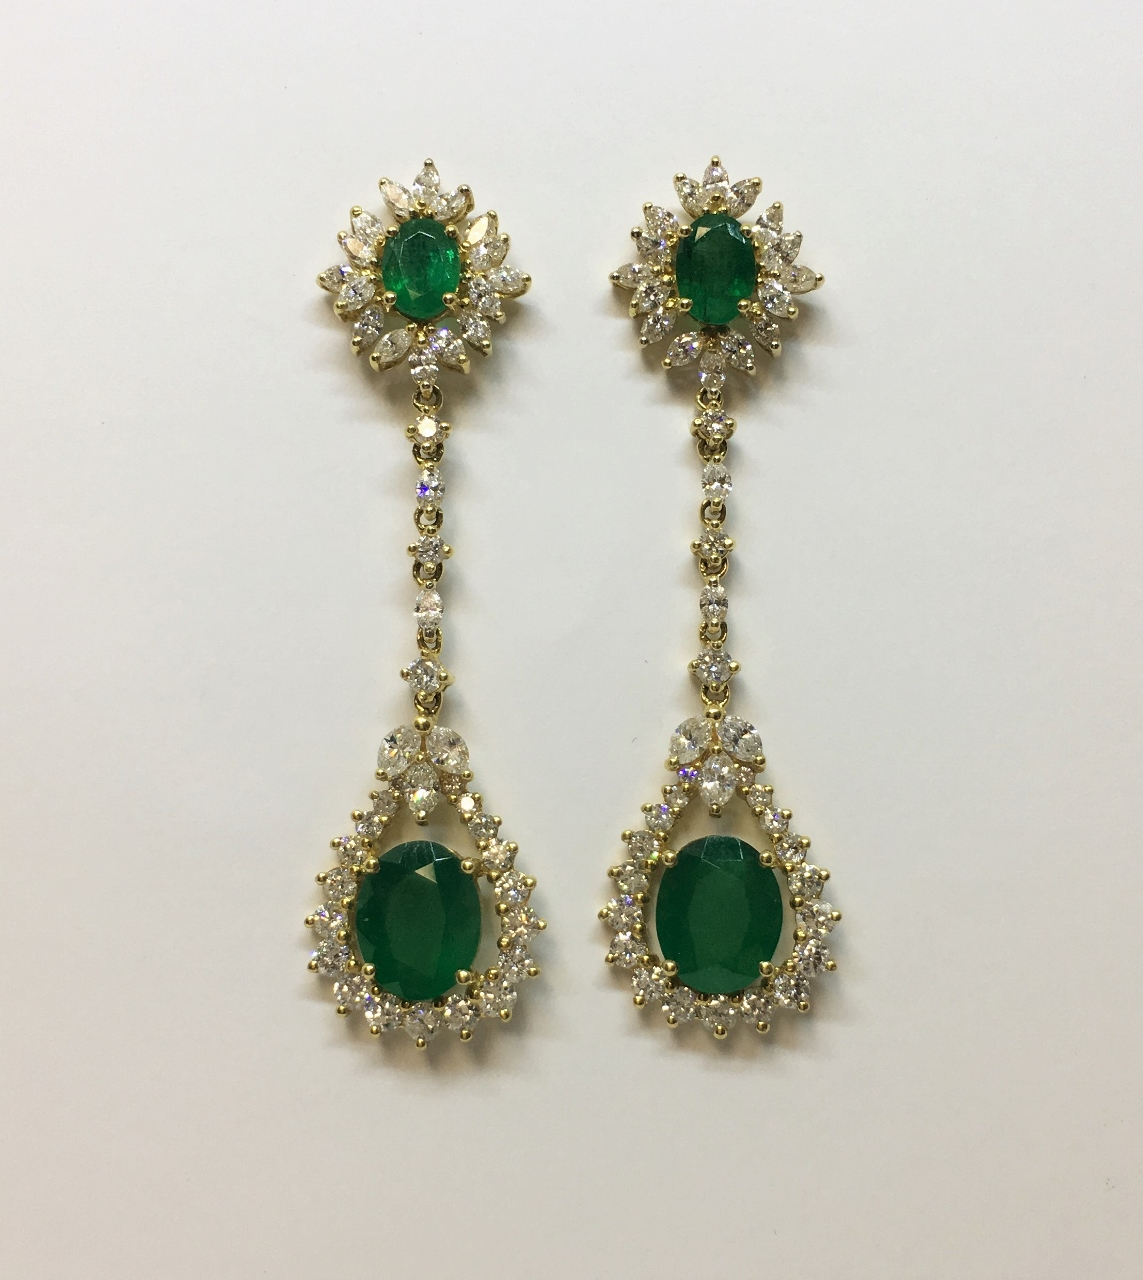 6 Carats Emerald & Diamond Dangling Earrings